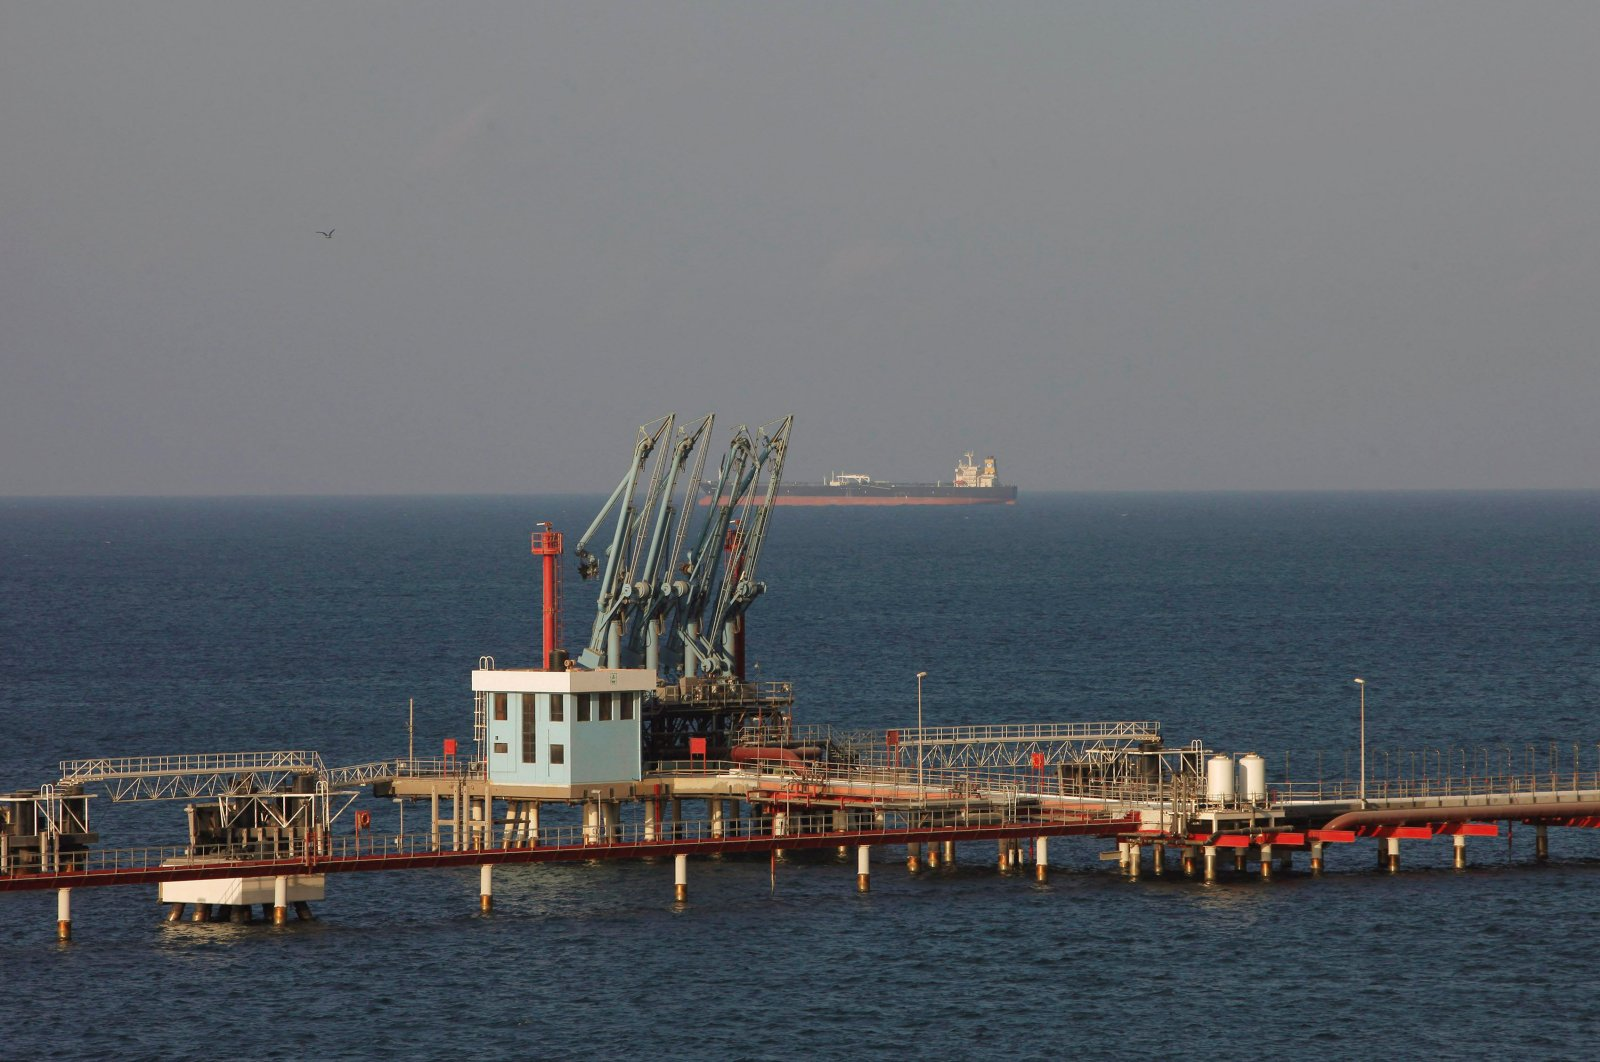 A view of pipelines and a loading berth of the Marsa al Hariga oil port in the city of Tobruk, east of Tripoli, Libya, August 20, 2013. (Reuters Photo)